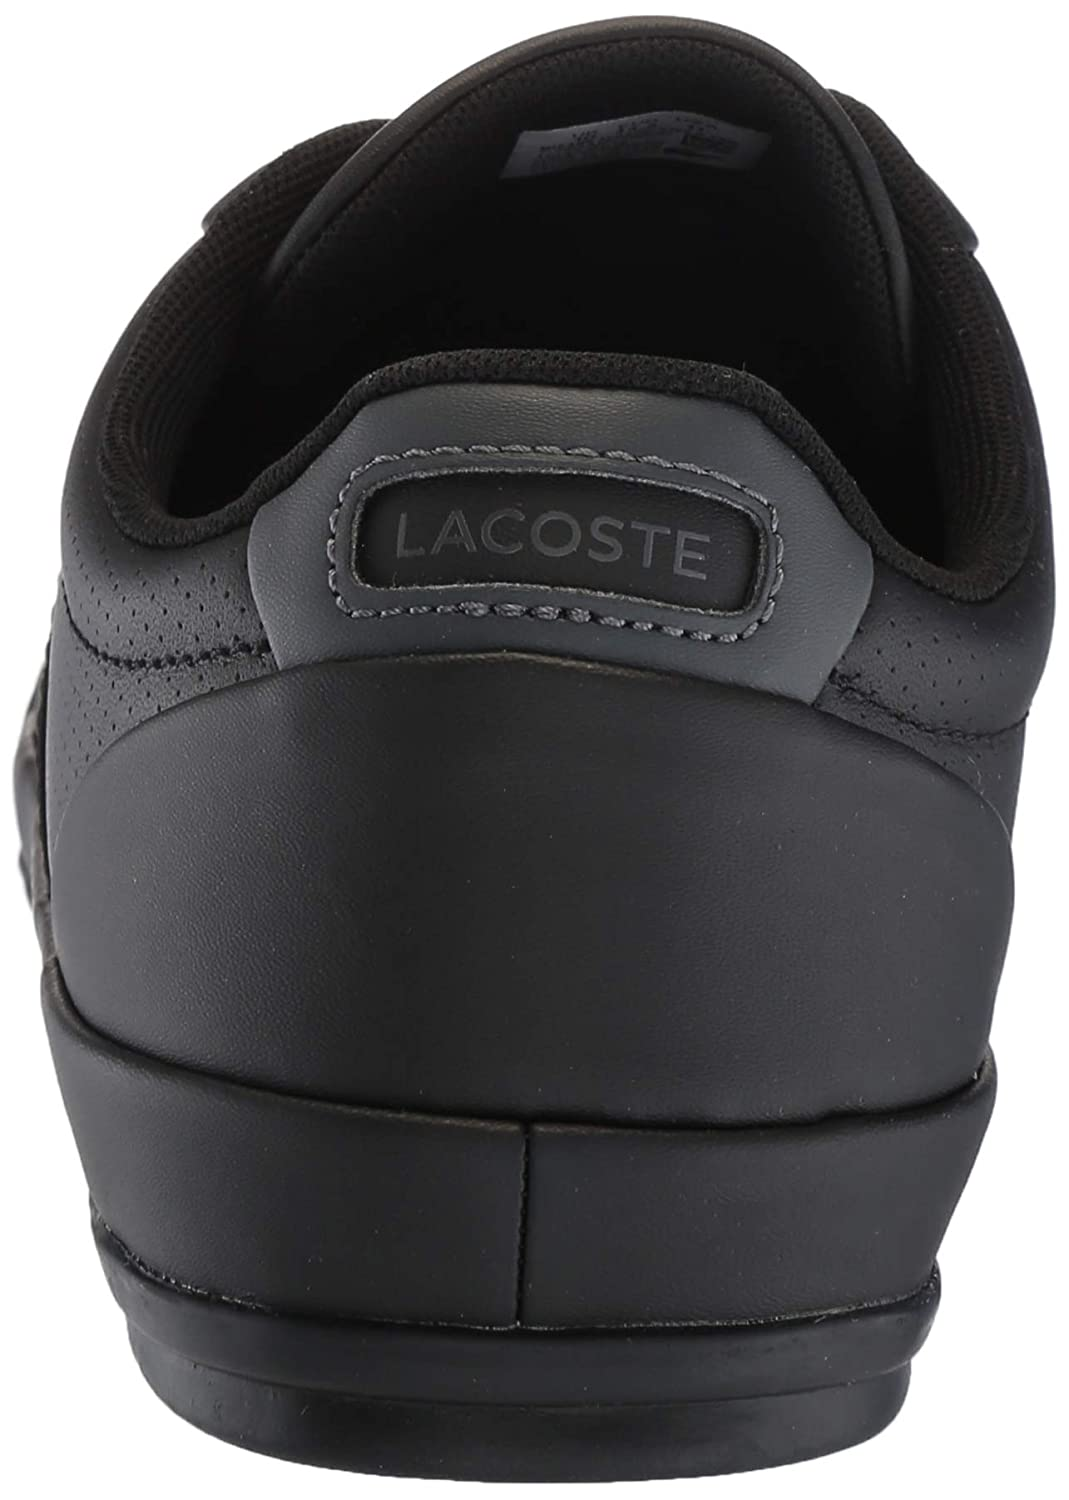 Gentlemen/Ladies Lacoste Men's Misano B07C3QGHPQ Fashion Sneakers Practical and economical customers First batch of customers economical have fun 6410fa